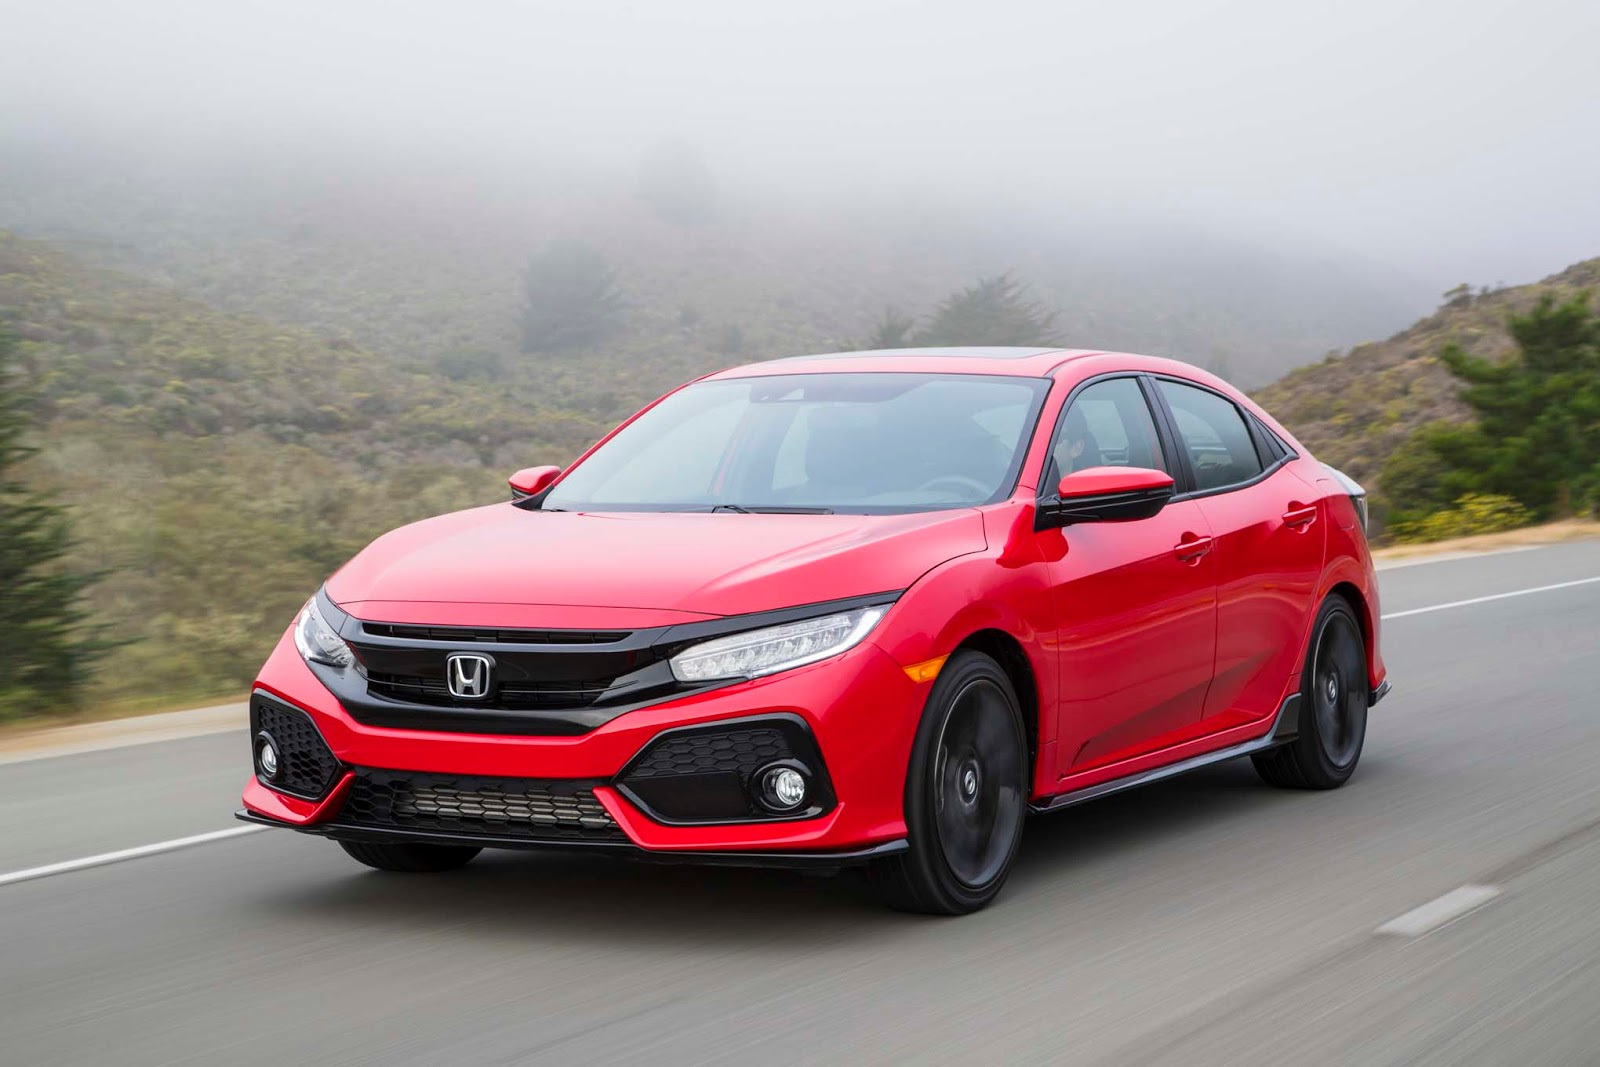 The New Civic Expertly Incorporates Substance And Comfort Without Compromising Any Of Its Prevailing Values That Have Earned Renowned Name